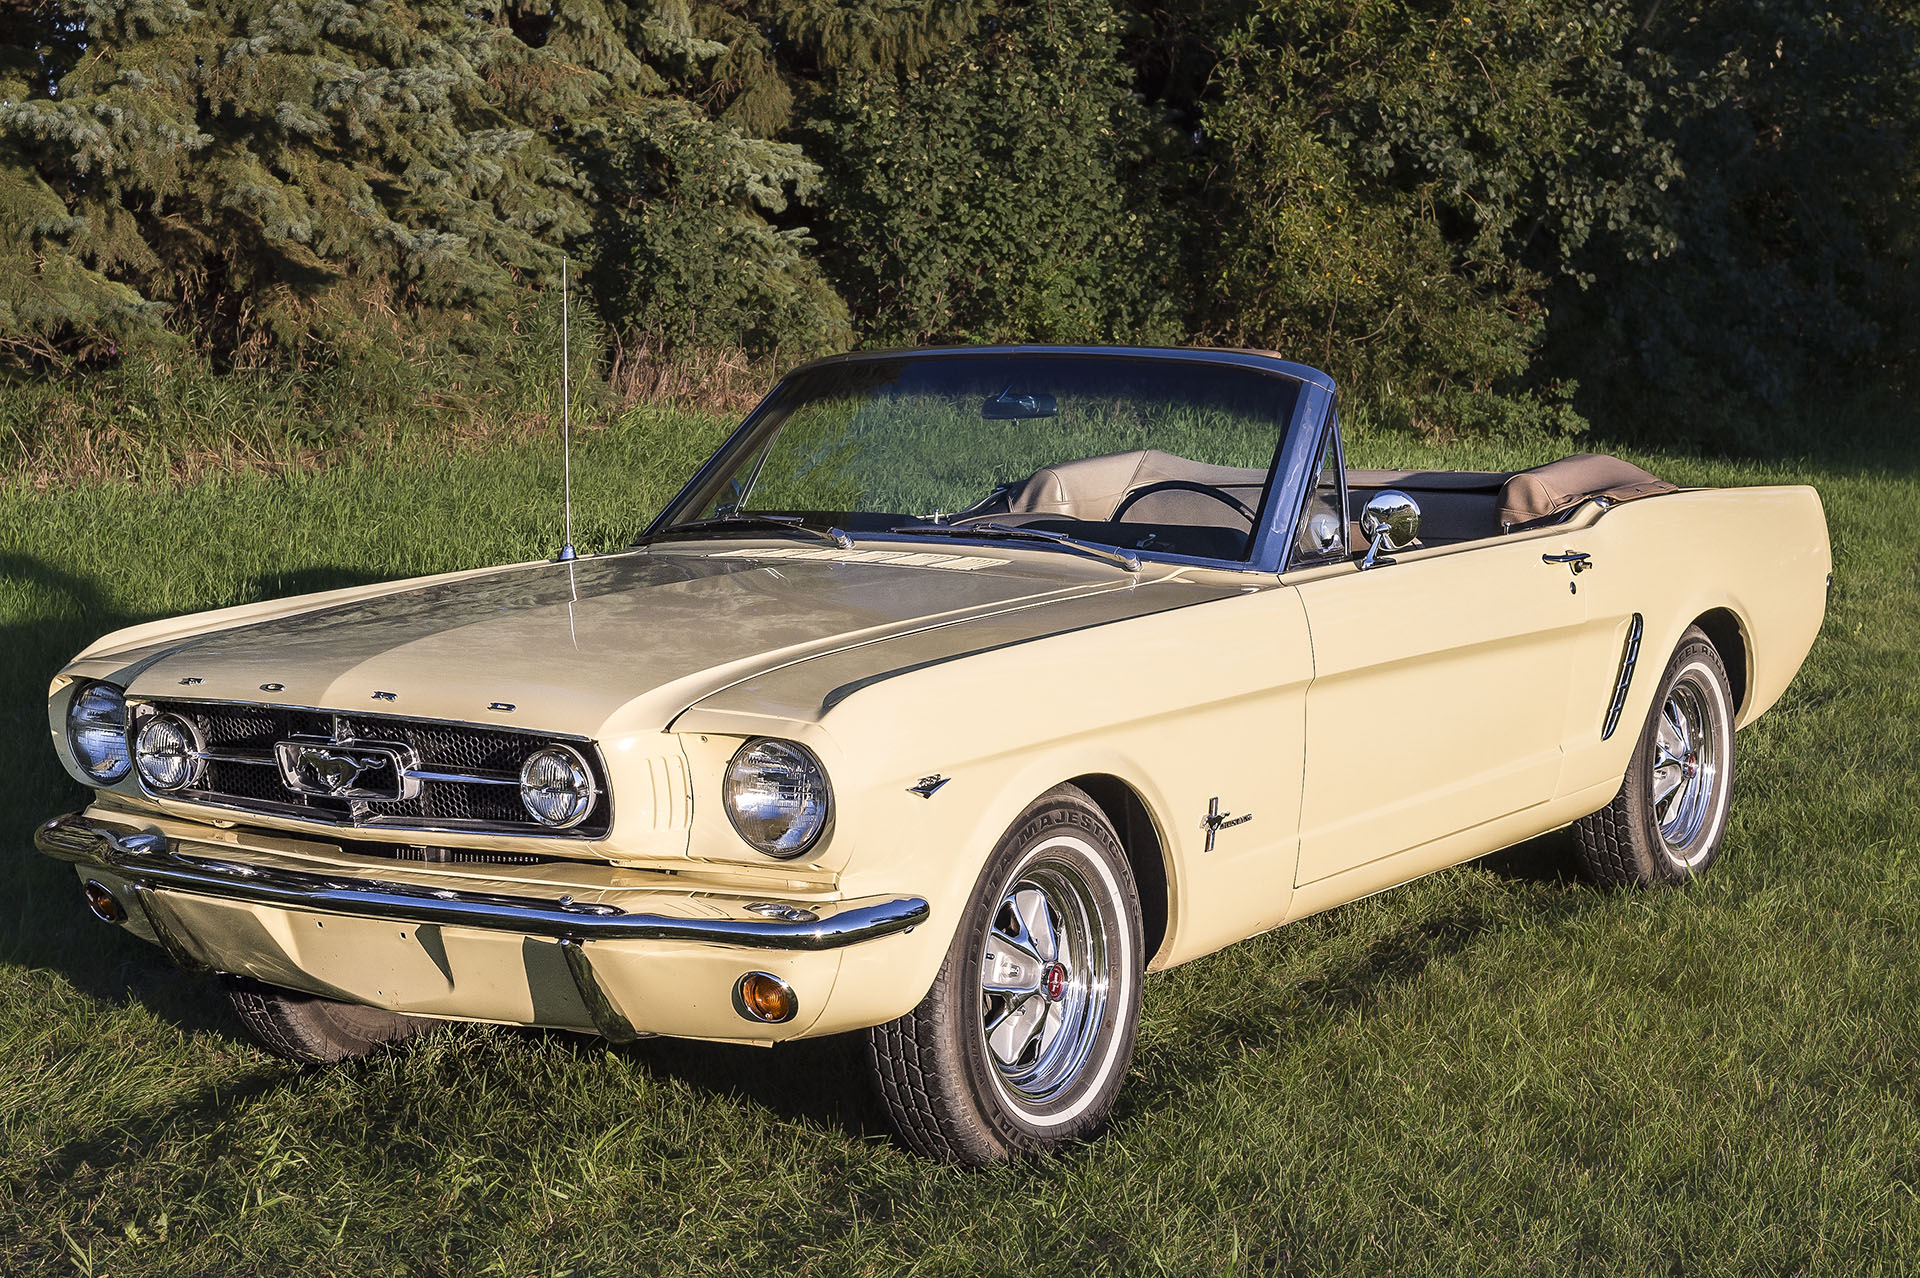 1964 1/2 Mustang Convertible    Built April 23, 1964. This car was completely rebuilt in 2011 on a rotisserie, detailed underneath and then reassembled. Colour is Sunlight Yellow with Palomino interior, 289 engine was balanced and blueprinted, and transmission was upgraded from a 4 to a 5 speed. The car was driven to the Mustang 50th Anniversary celebration in Las Vegas Nevada in April 2014 and is driven to all car shows.